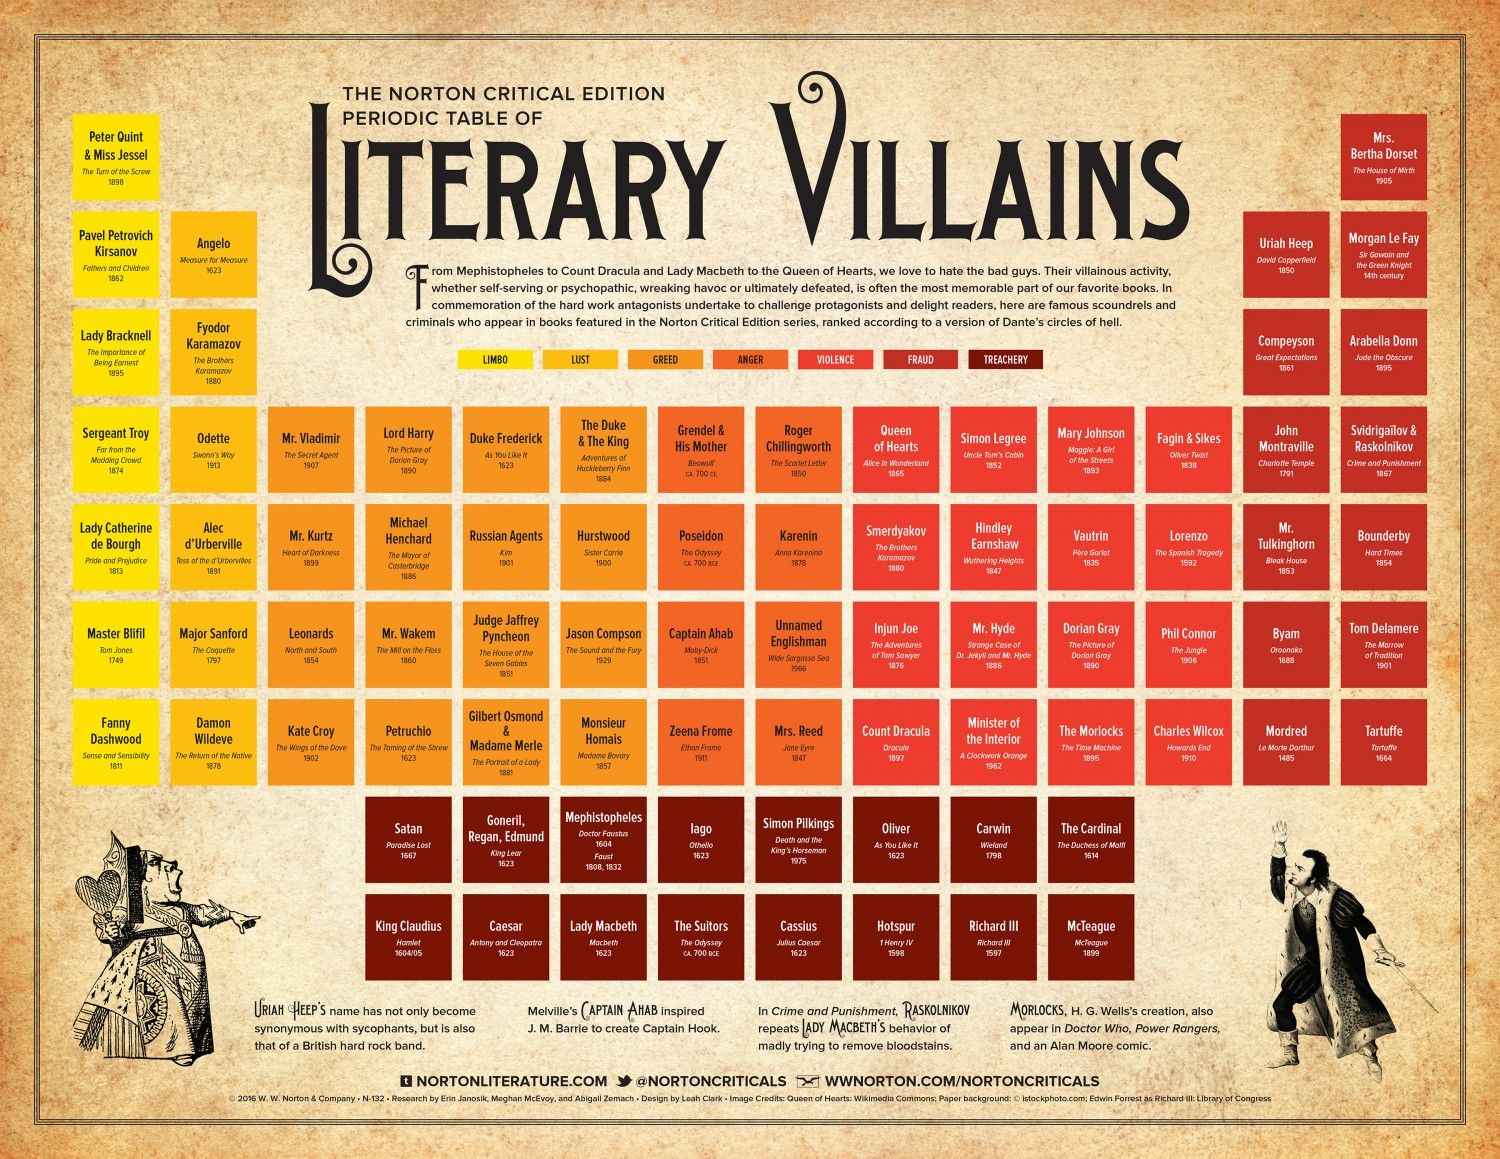 Periodic table of literary villains #infographic